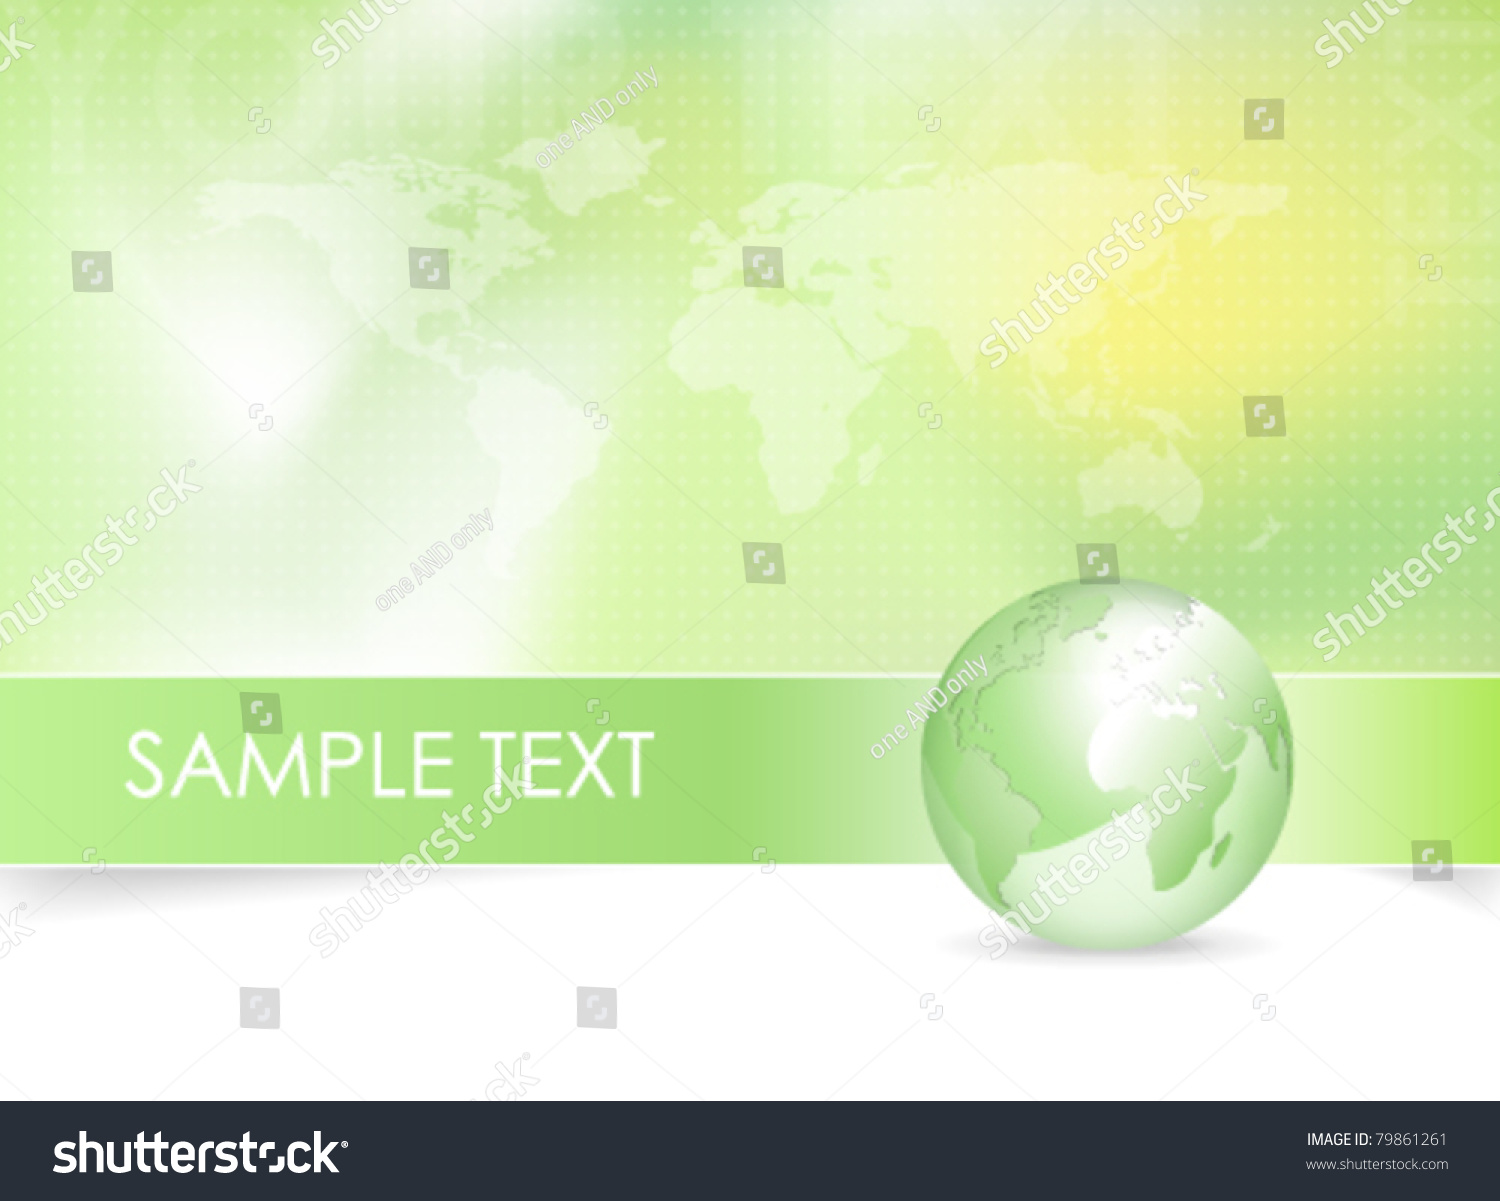 Global world map background design green vectores en stock 79861261 global world map background design green earth globe gumiabroncs Choice Image